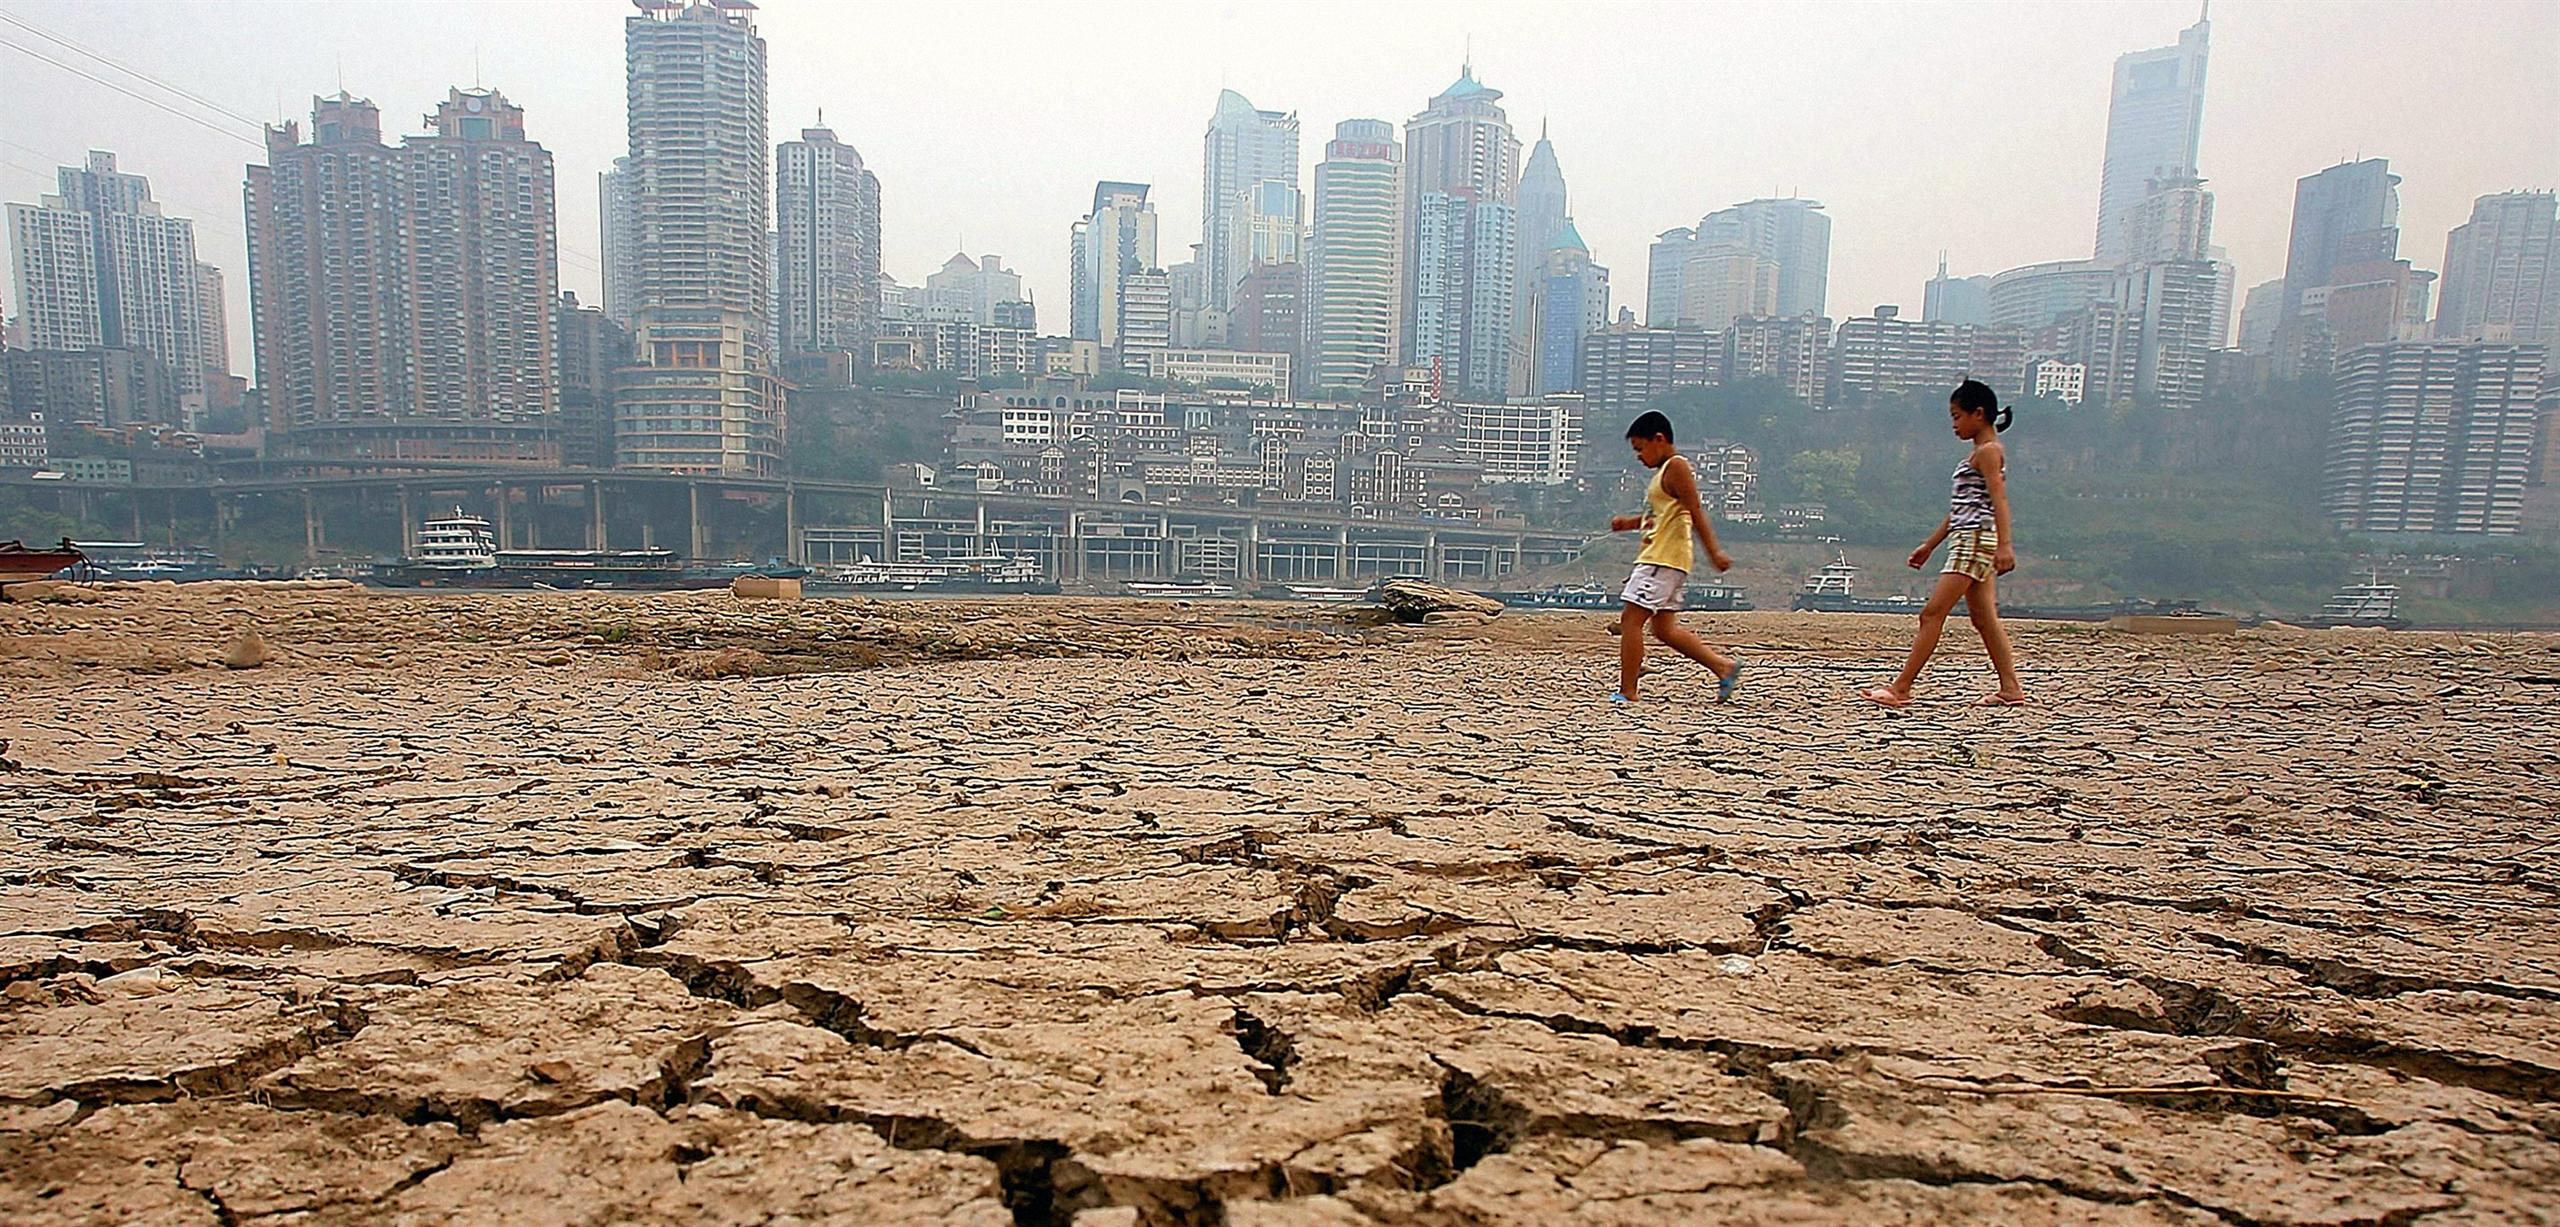 Two young children walking across cracked, dry land with a city skyline behind.